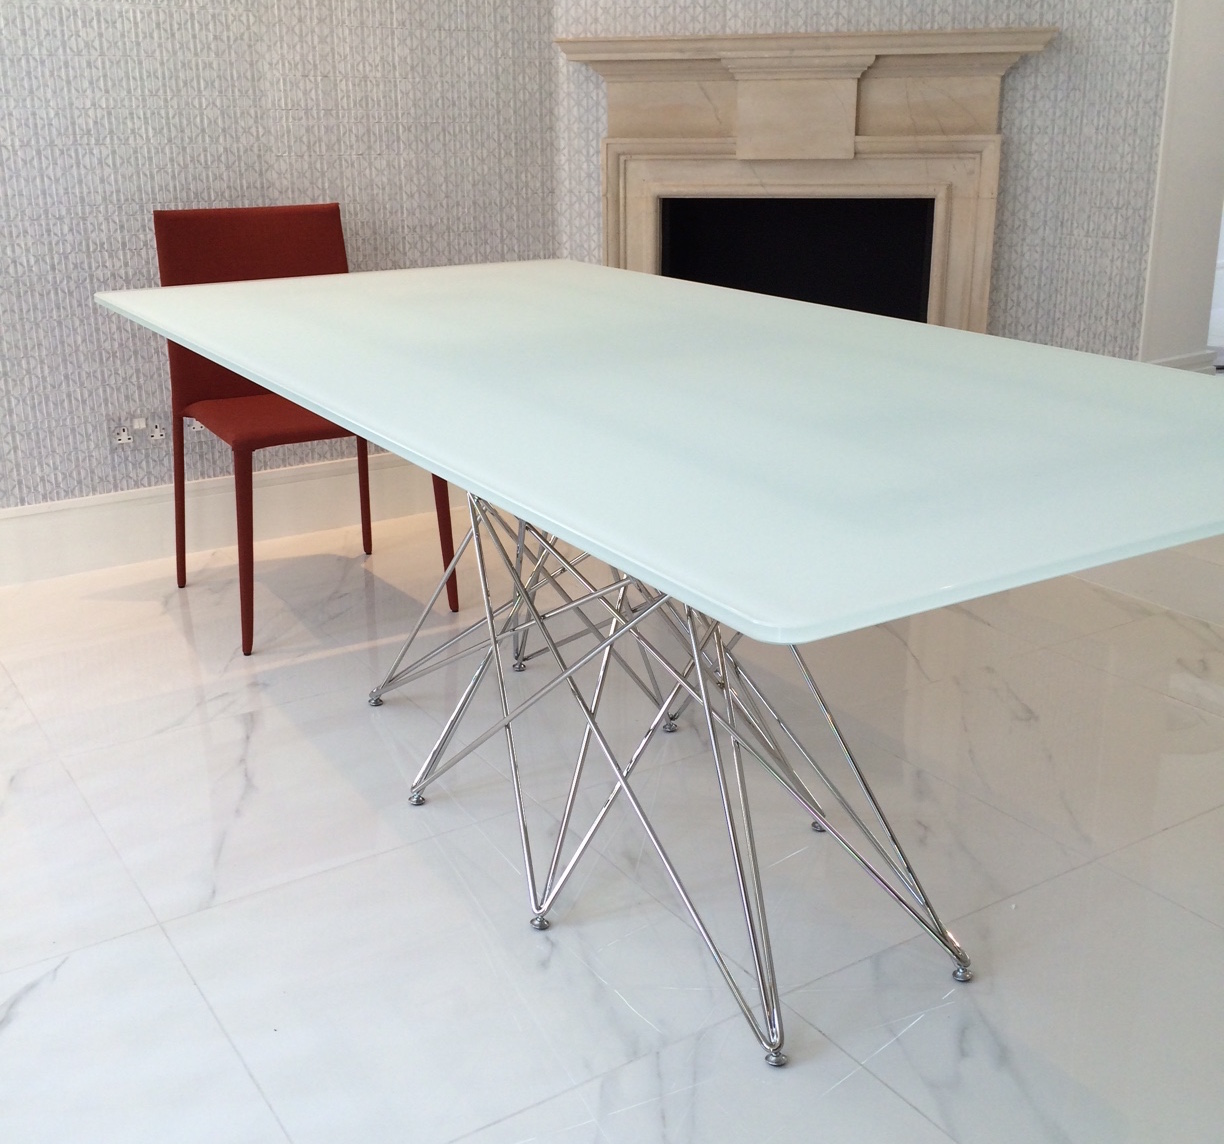 Dining tables octa table with 200x100cm acid treated - White table with glass top ...